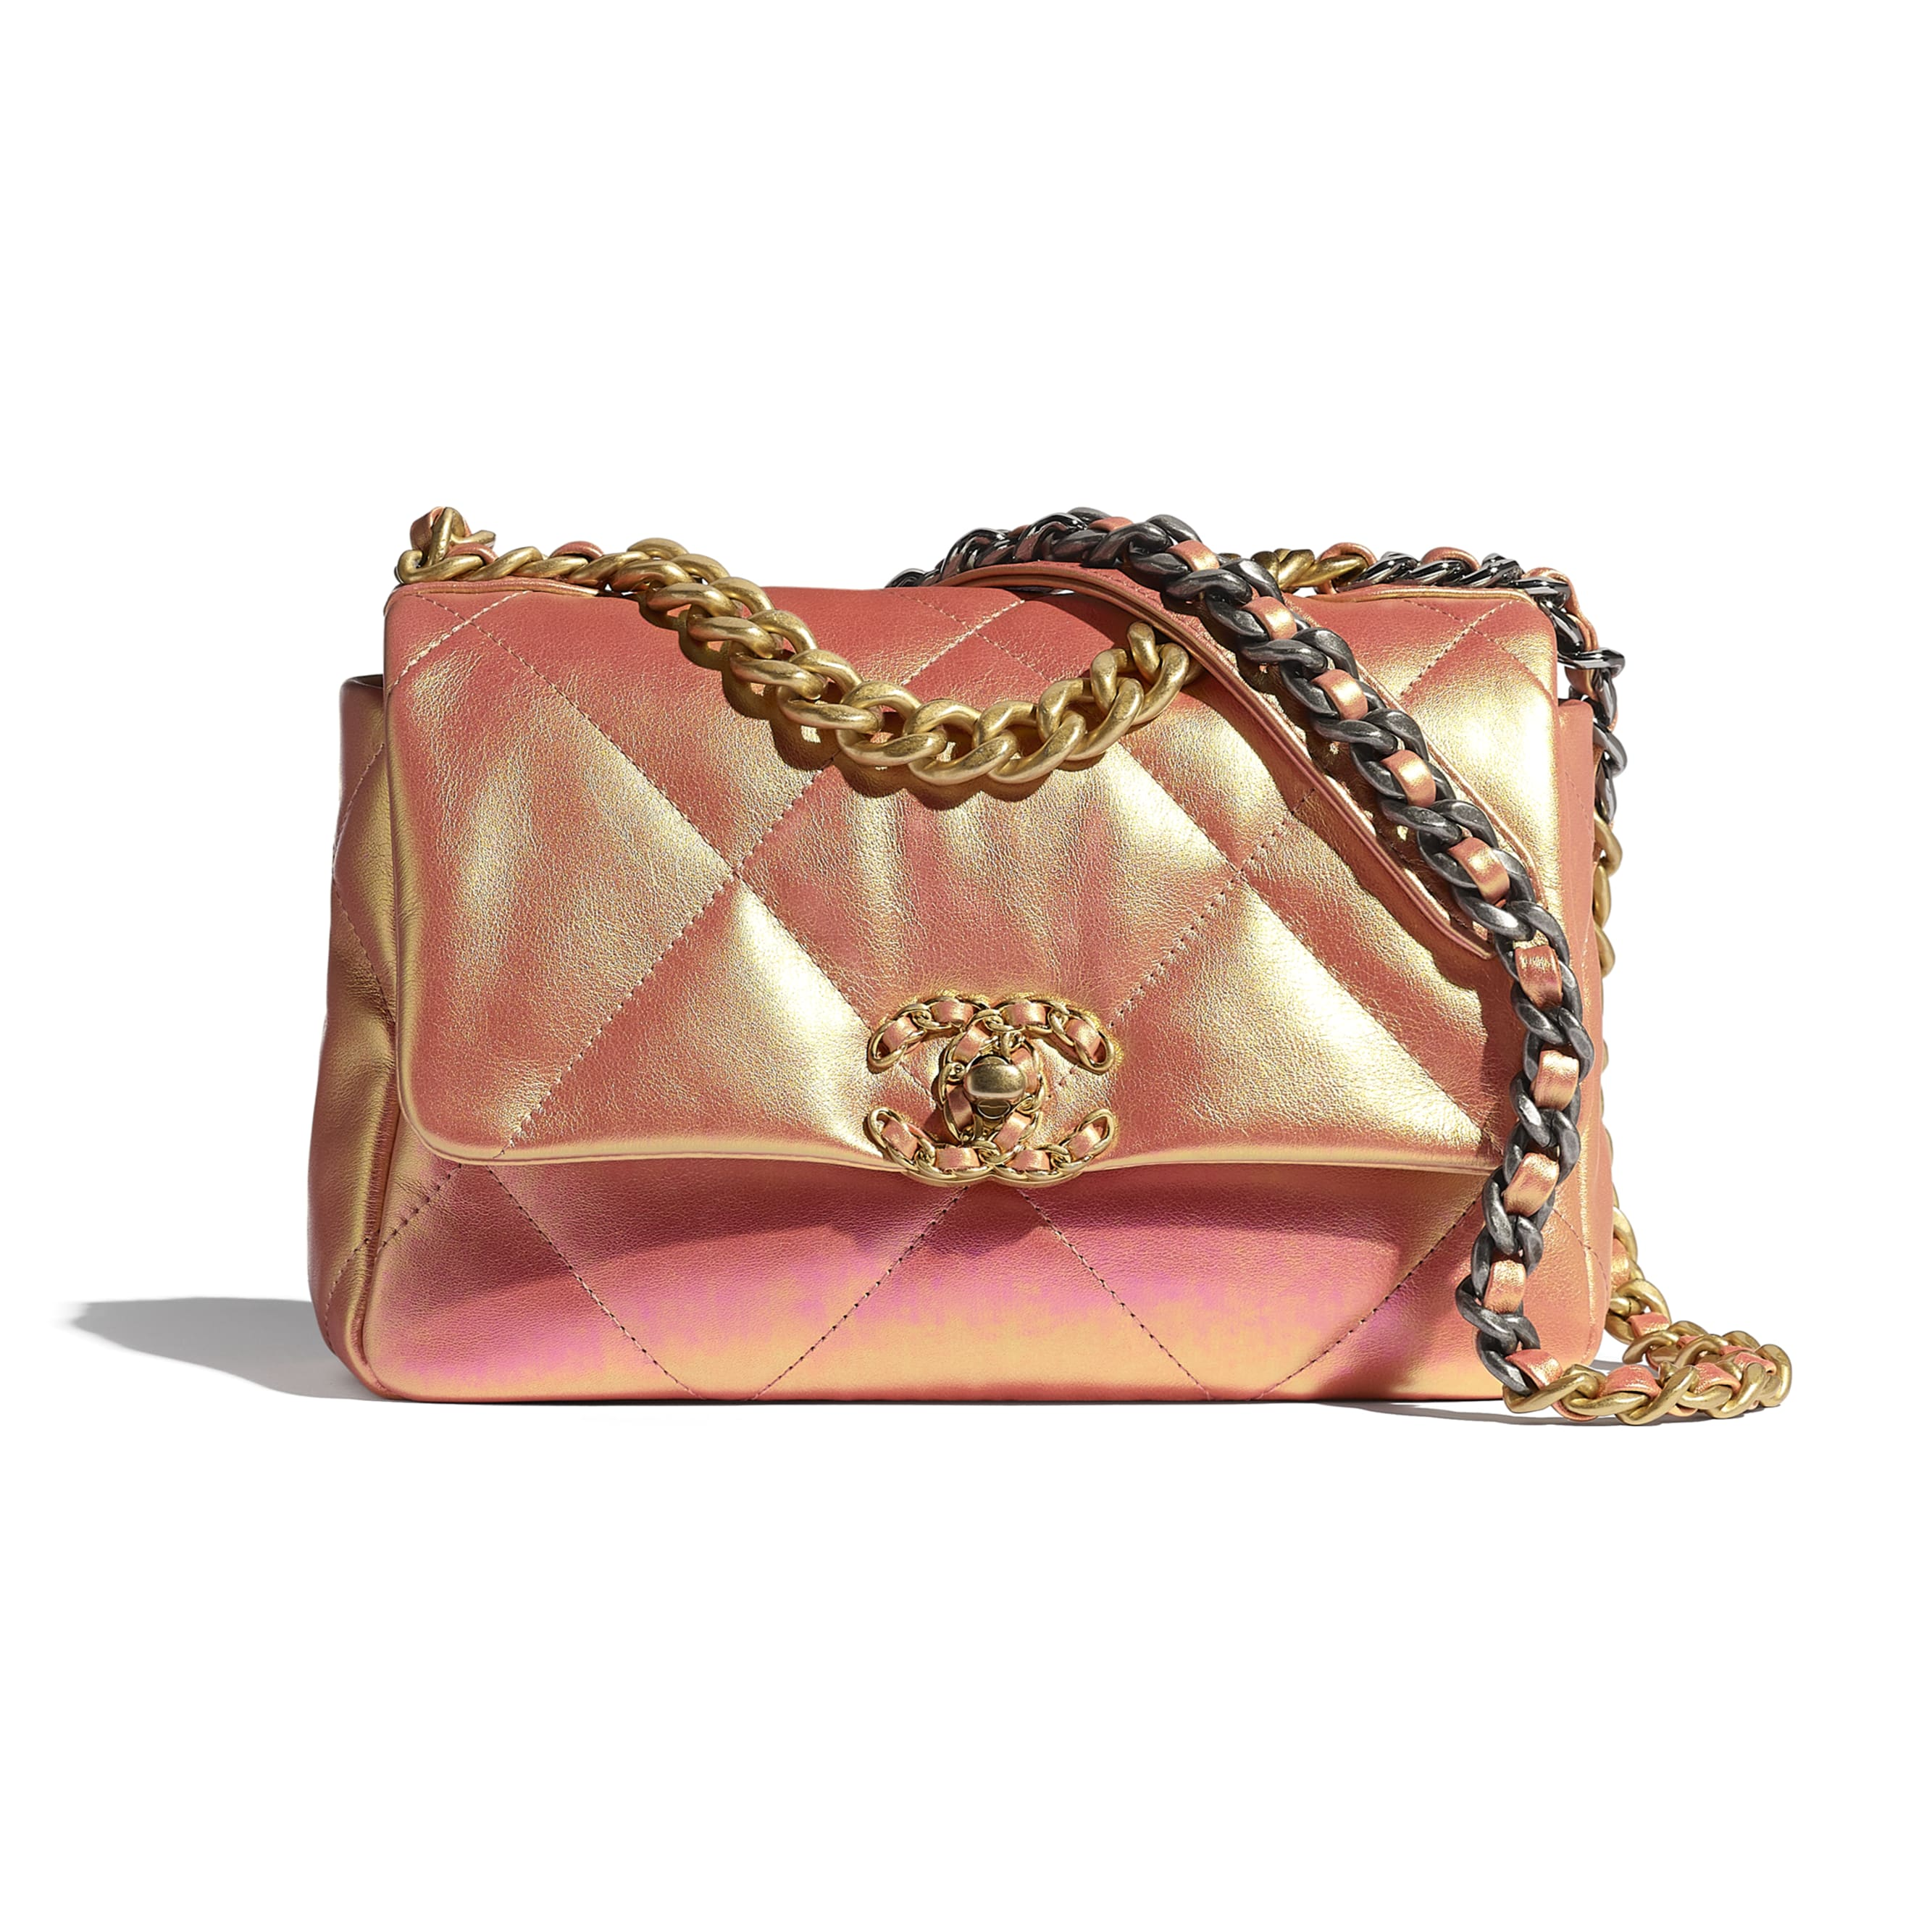 CHANEL 19 Flap Bag - Pink - Iridescent Calfskin, Gold-Tone, Silver-Tone & Ruthenium-Finish Metal - CHANEL - Default view - see standard sized version